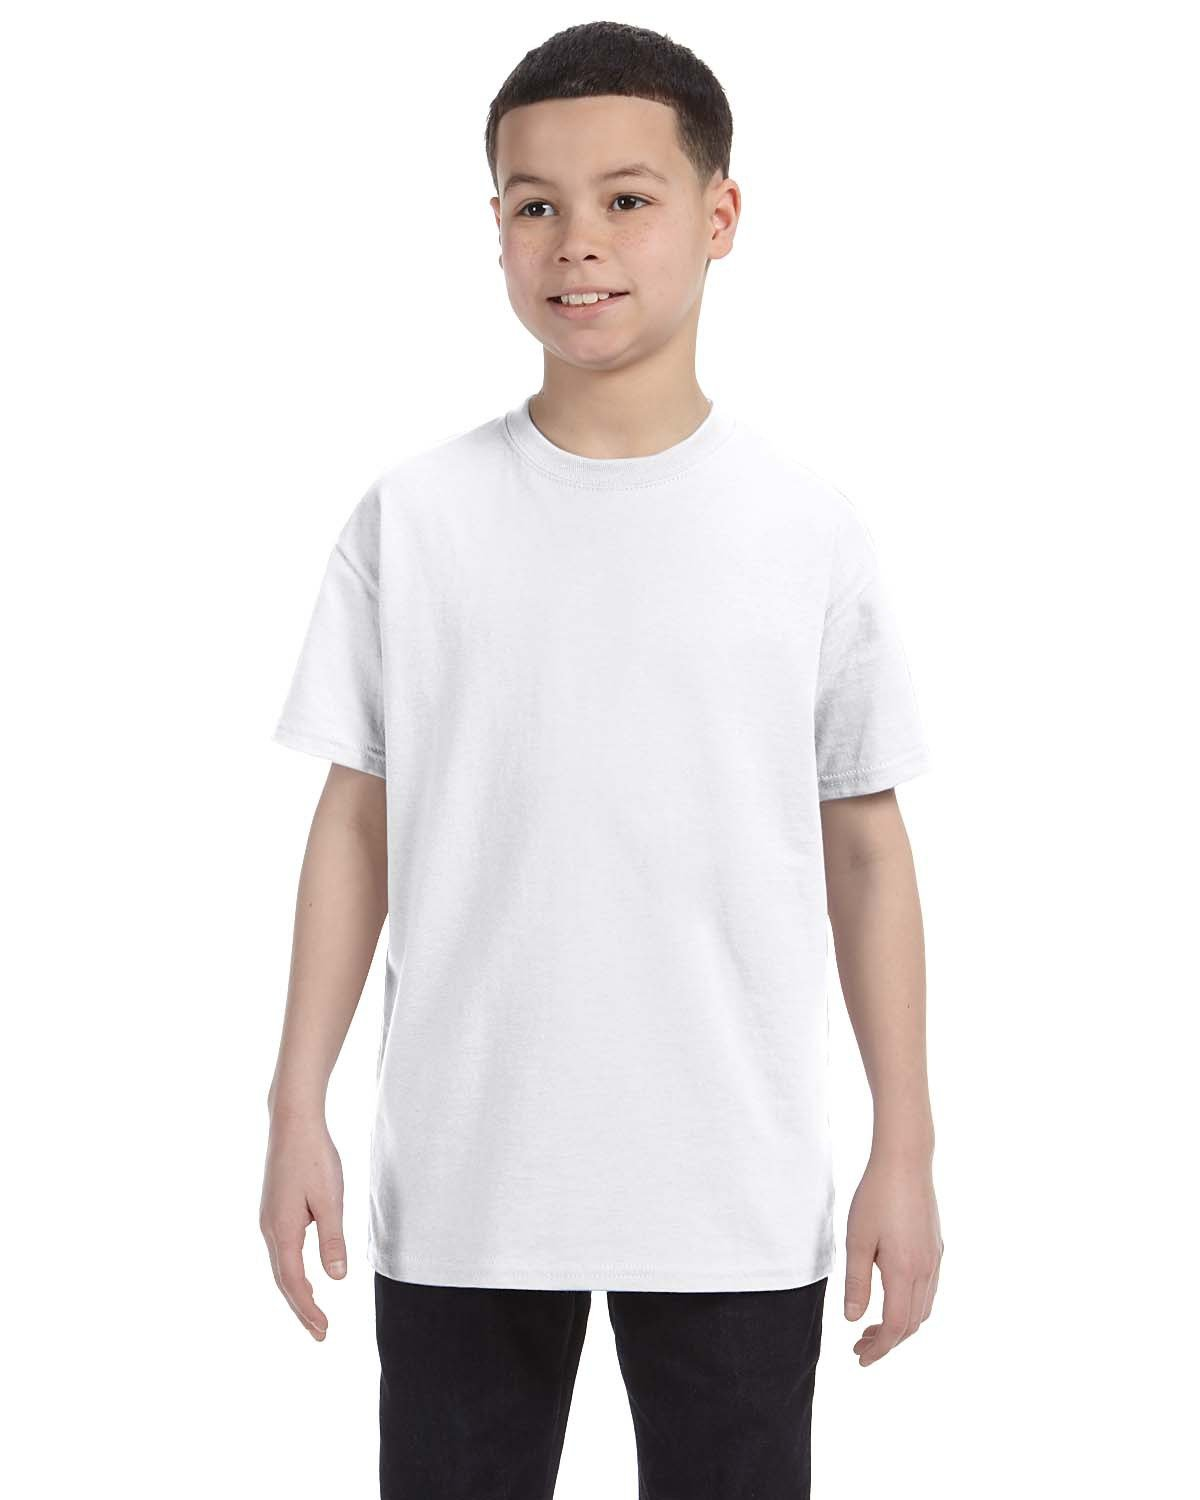 Hanes Youth Authentic-T T-Shirt WHITE